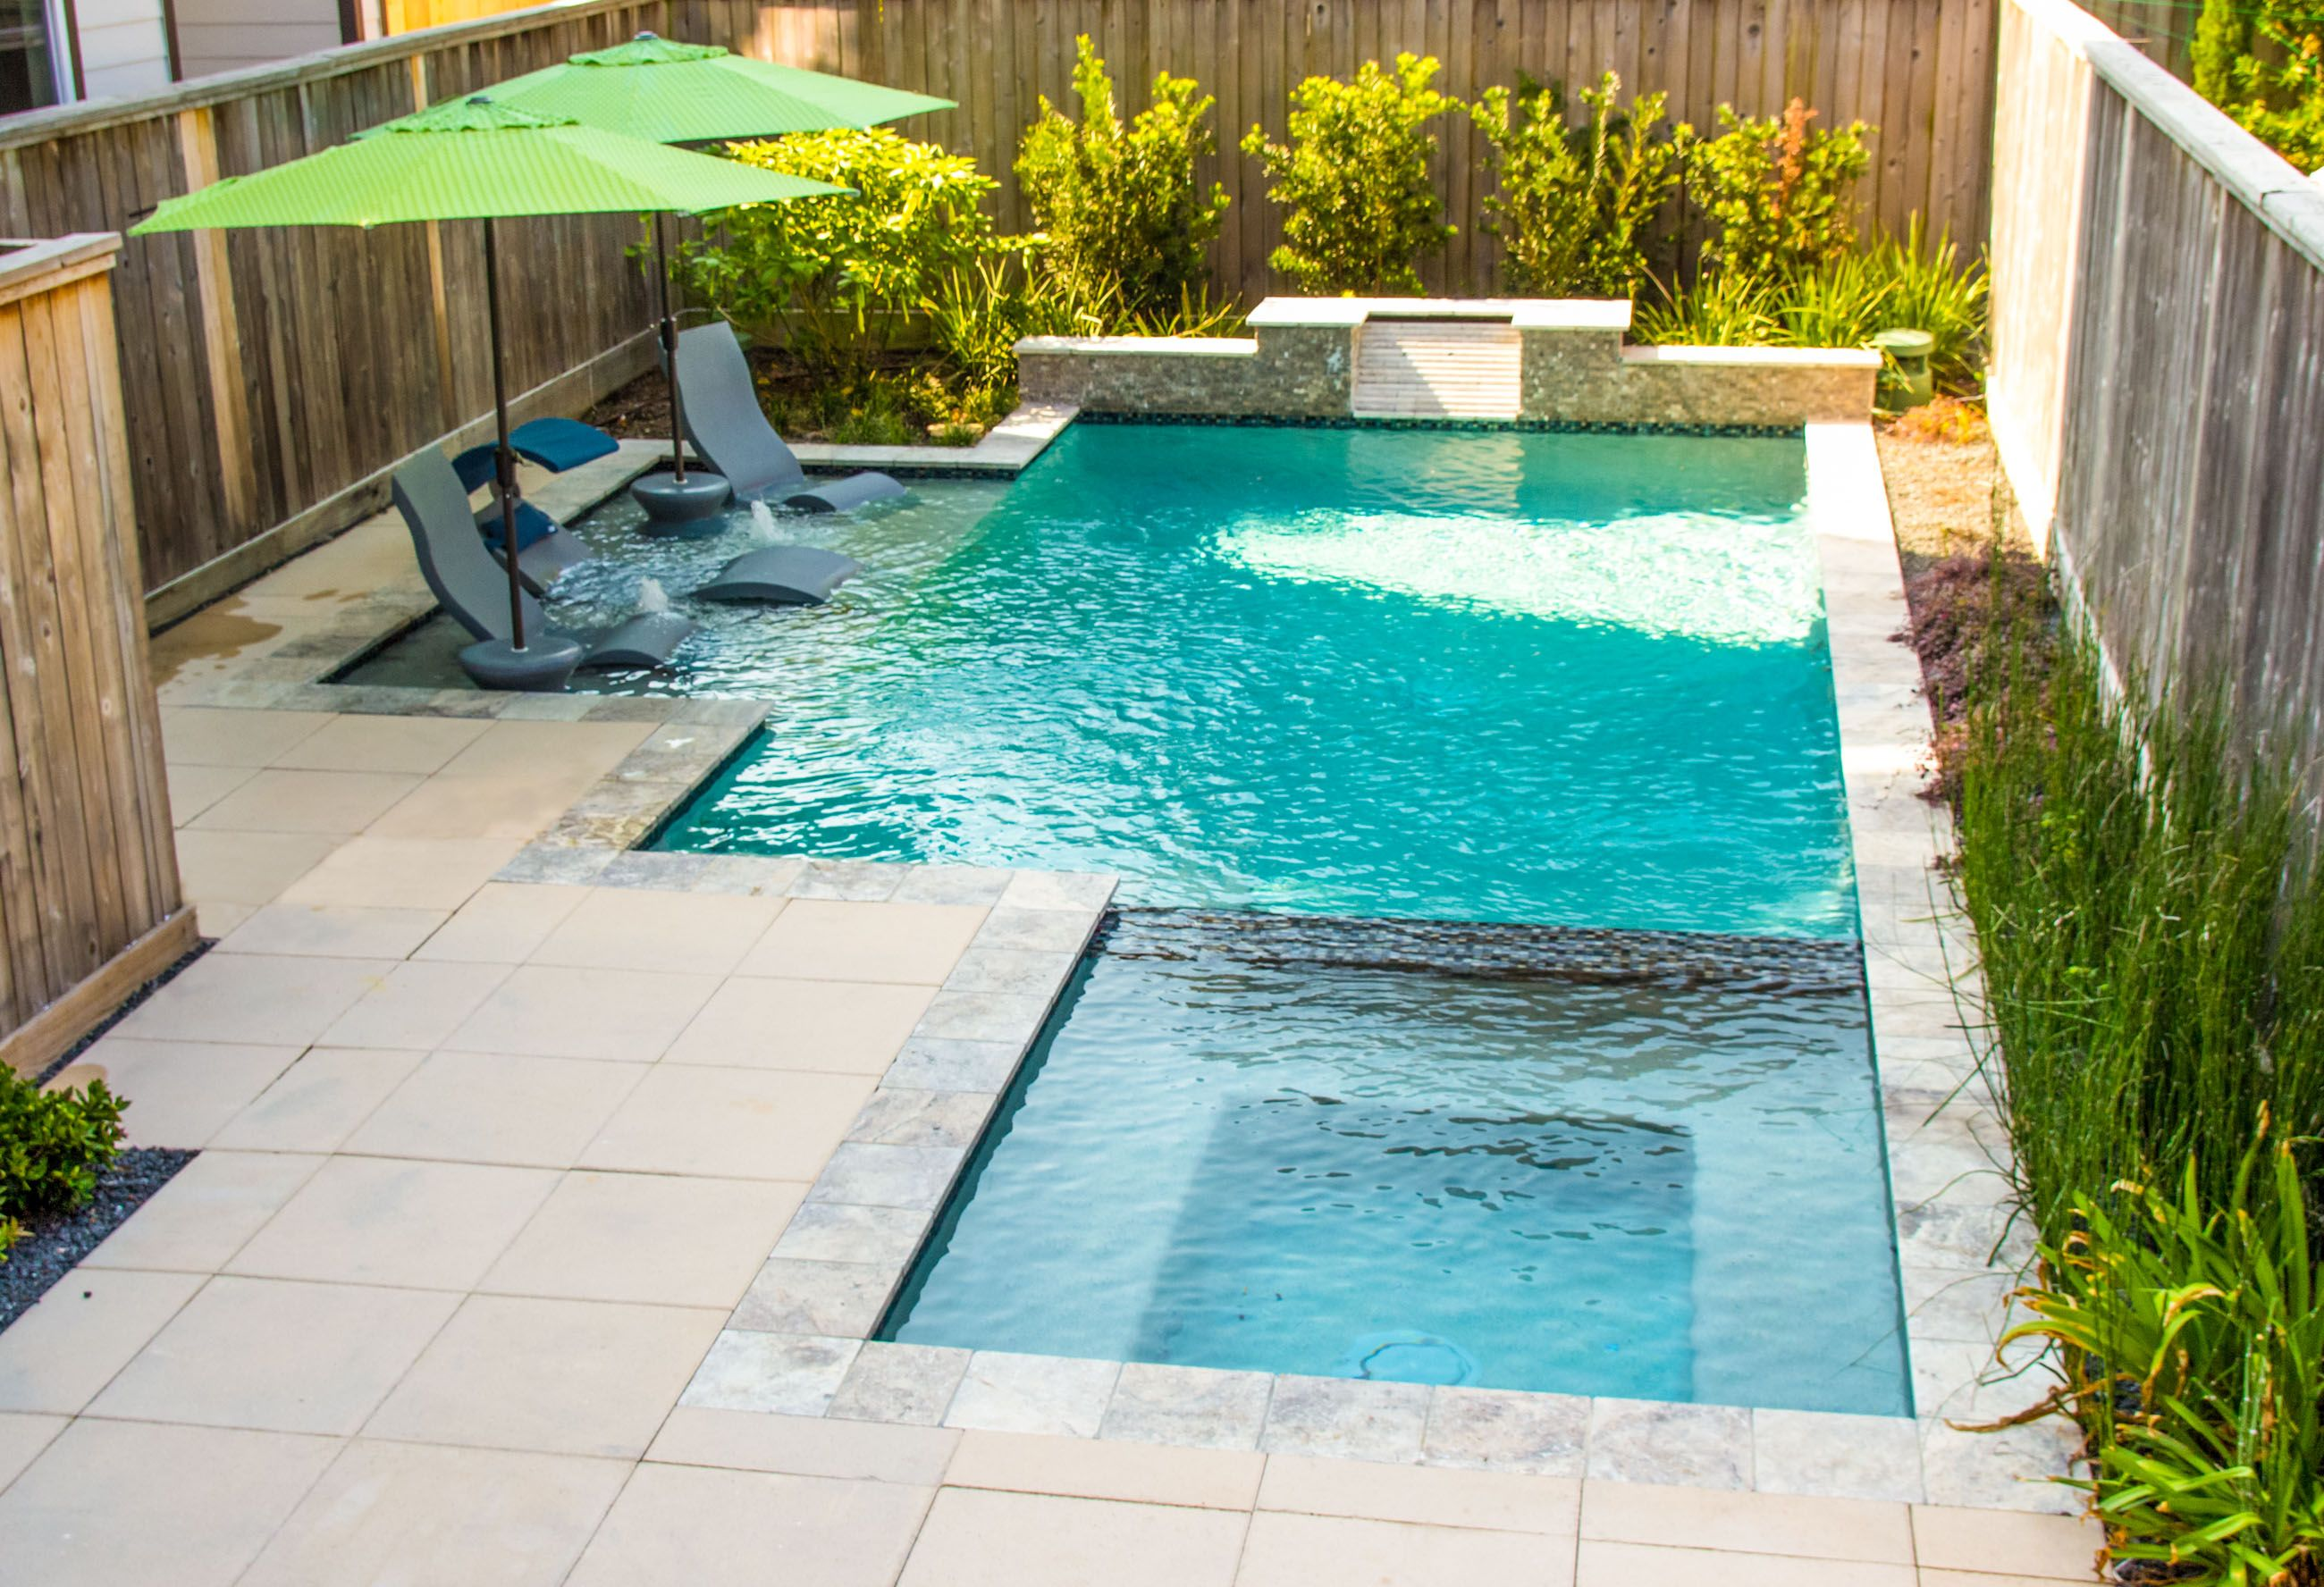 Custom Swimming Pools Priced Between 50k 100k Platinum Pools Backyard Pool Landscaping Small Backyard Pools Swimming Pools Backyard